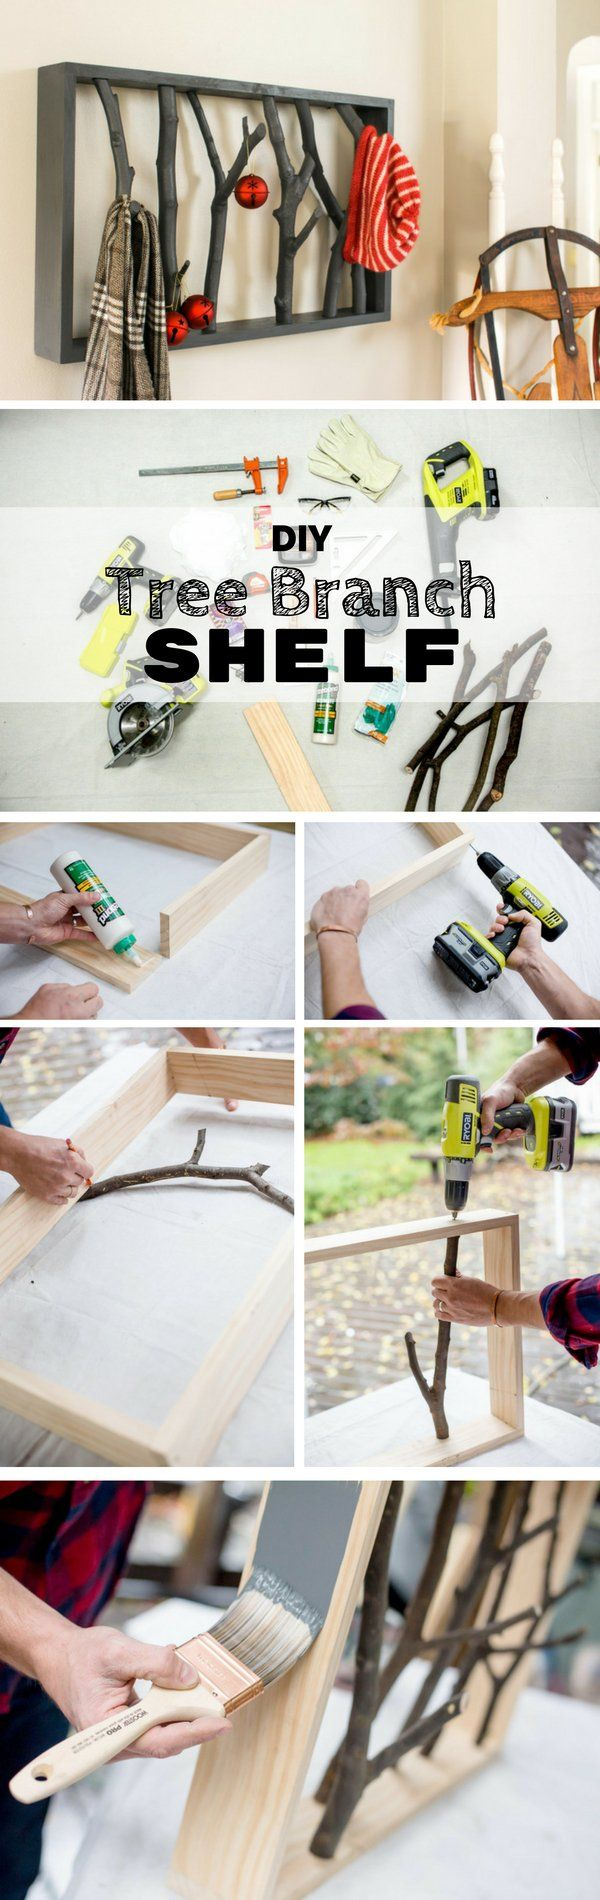 Check out the tutorial: #DIY Tree Branch Shelf @istandarddesign